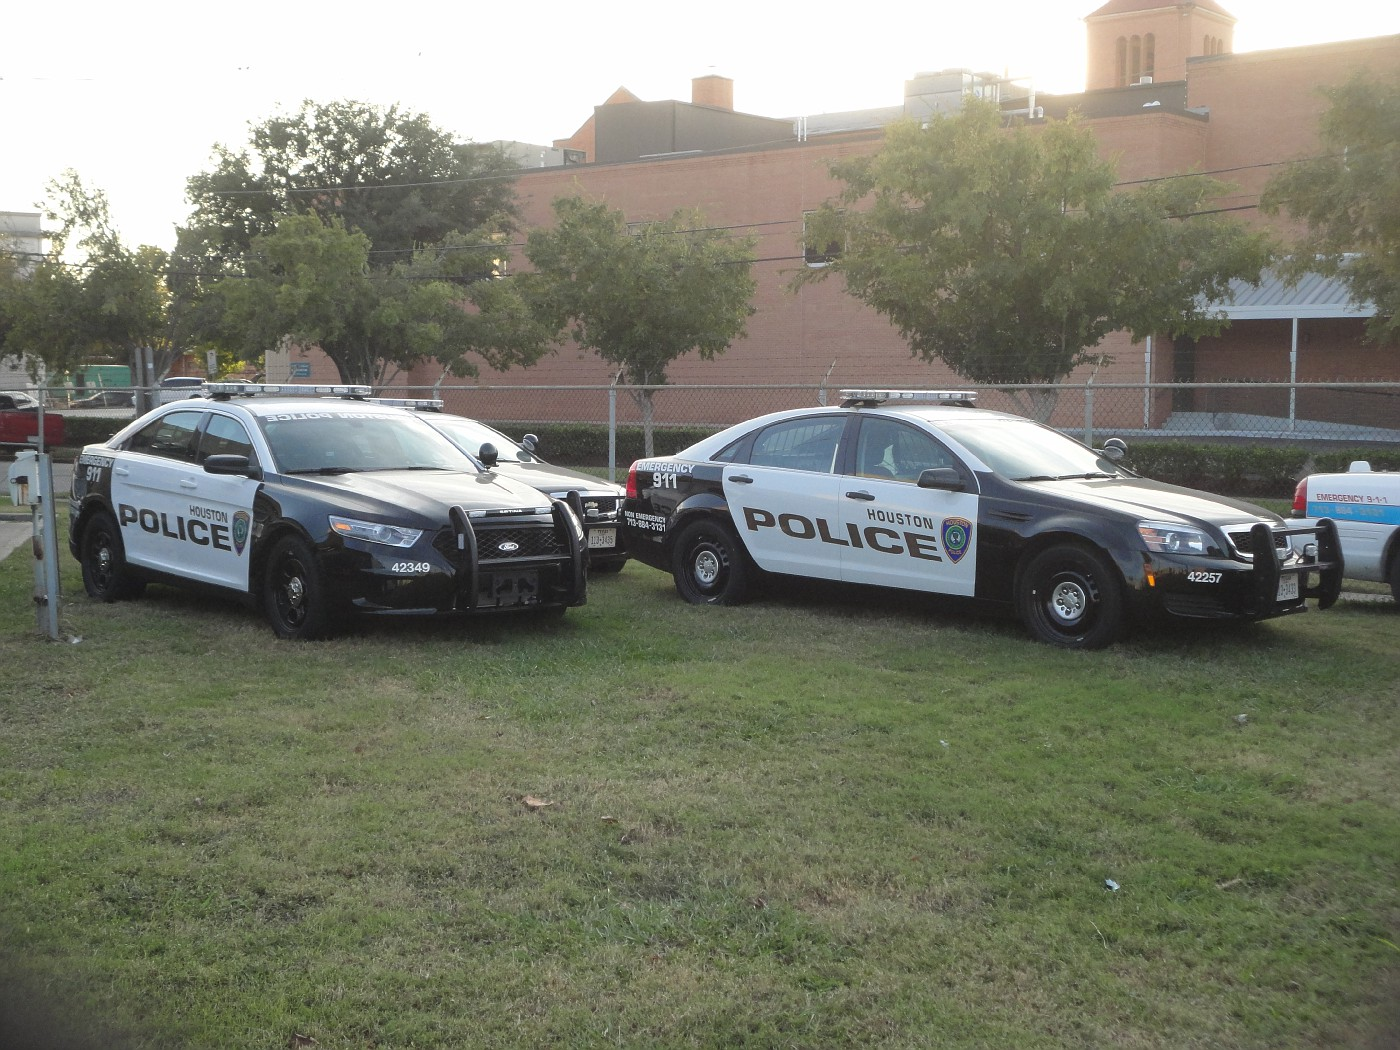 TX - Houston Police